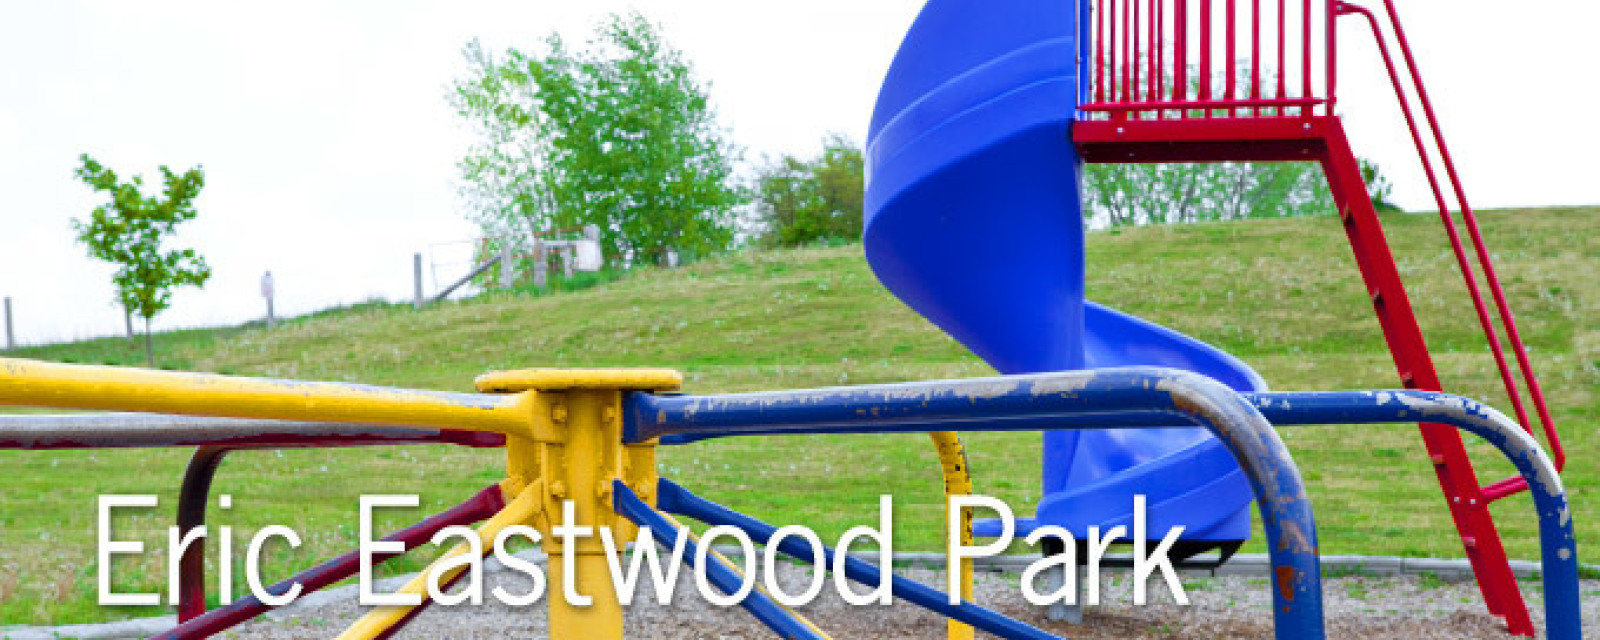 Eric Eastwood Neighbourhood Park